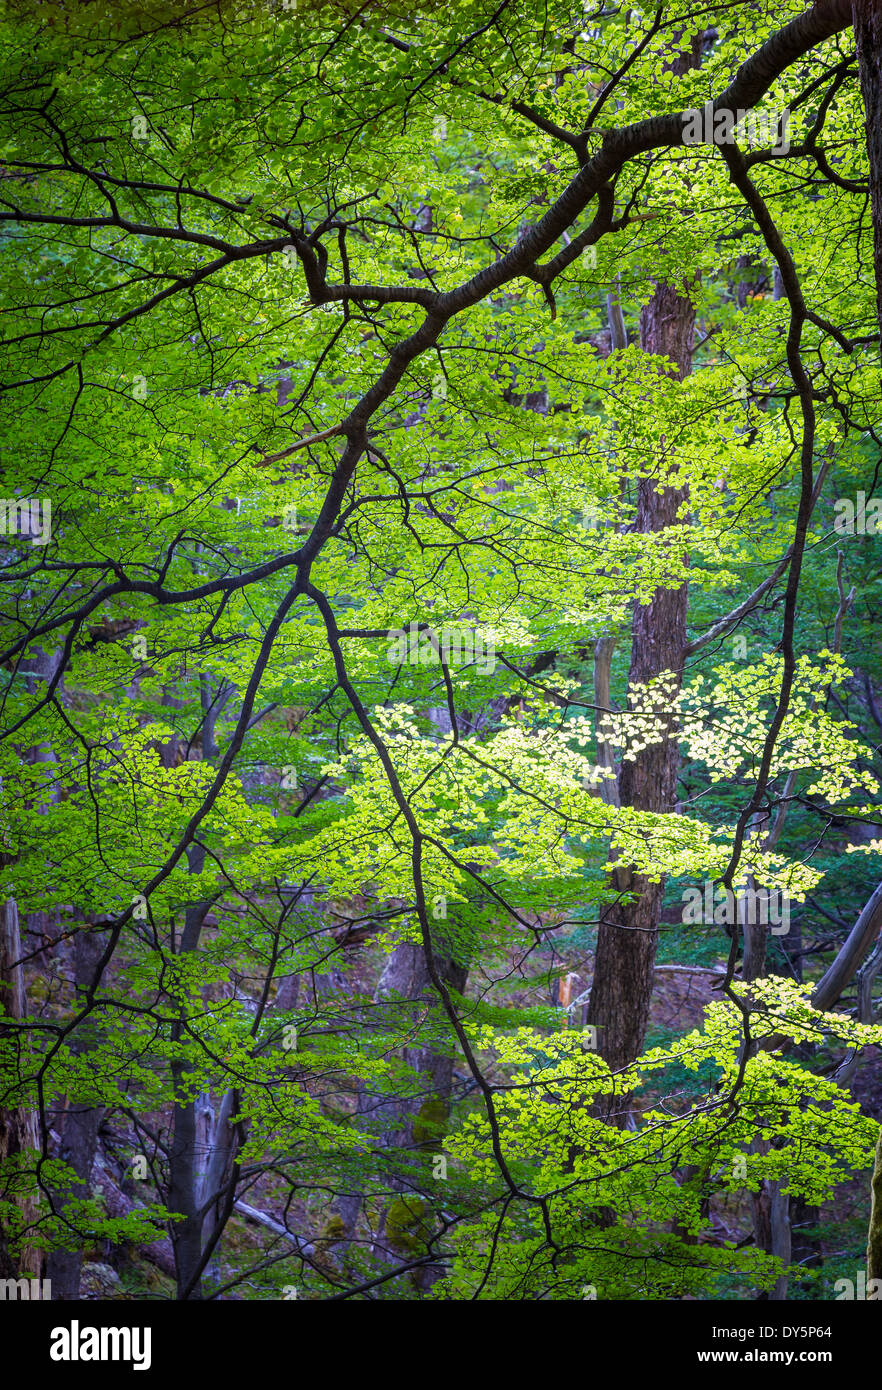 Bright green leaves on tree in forest in the Rio de las Vueltas valley near El Chalten, Patagonia, Argentina - Stock Image